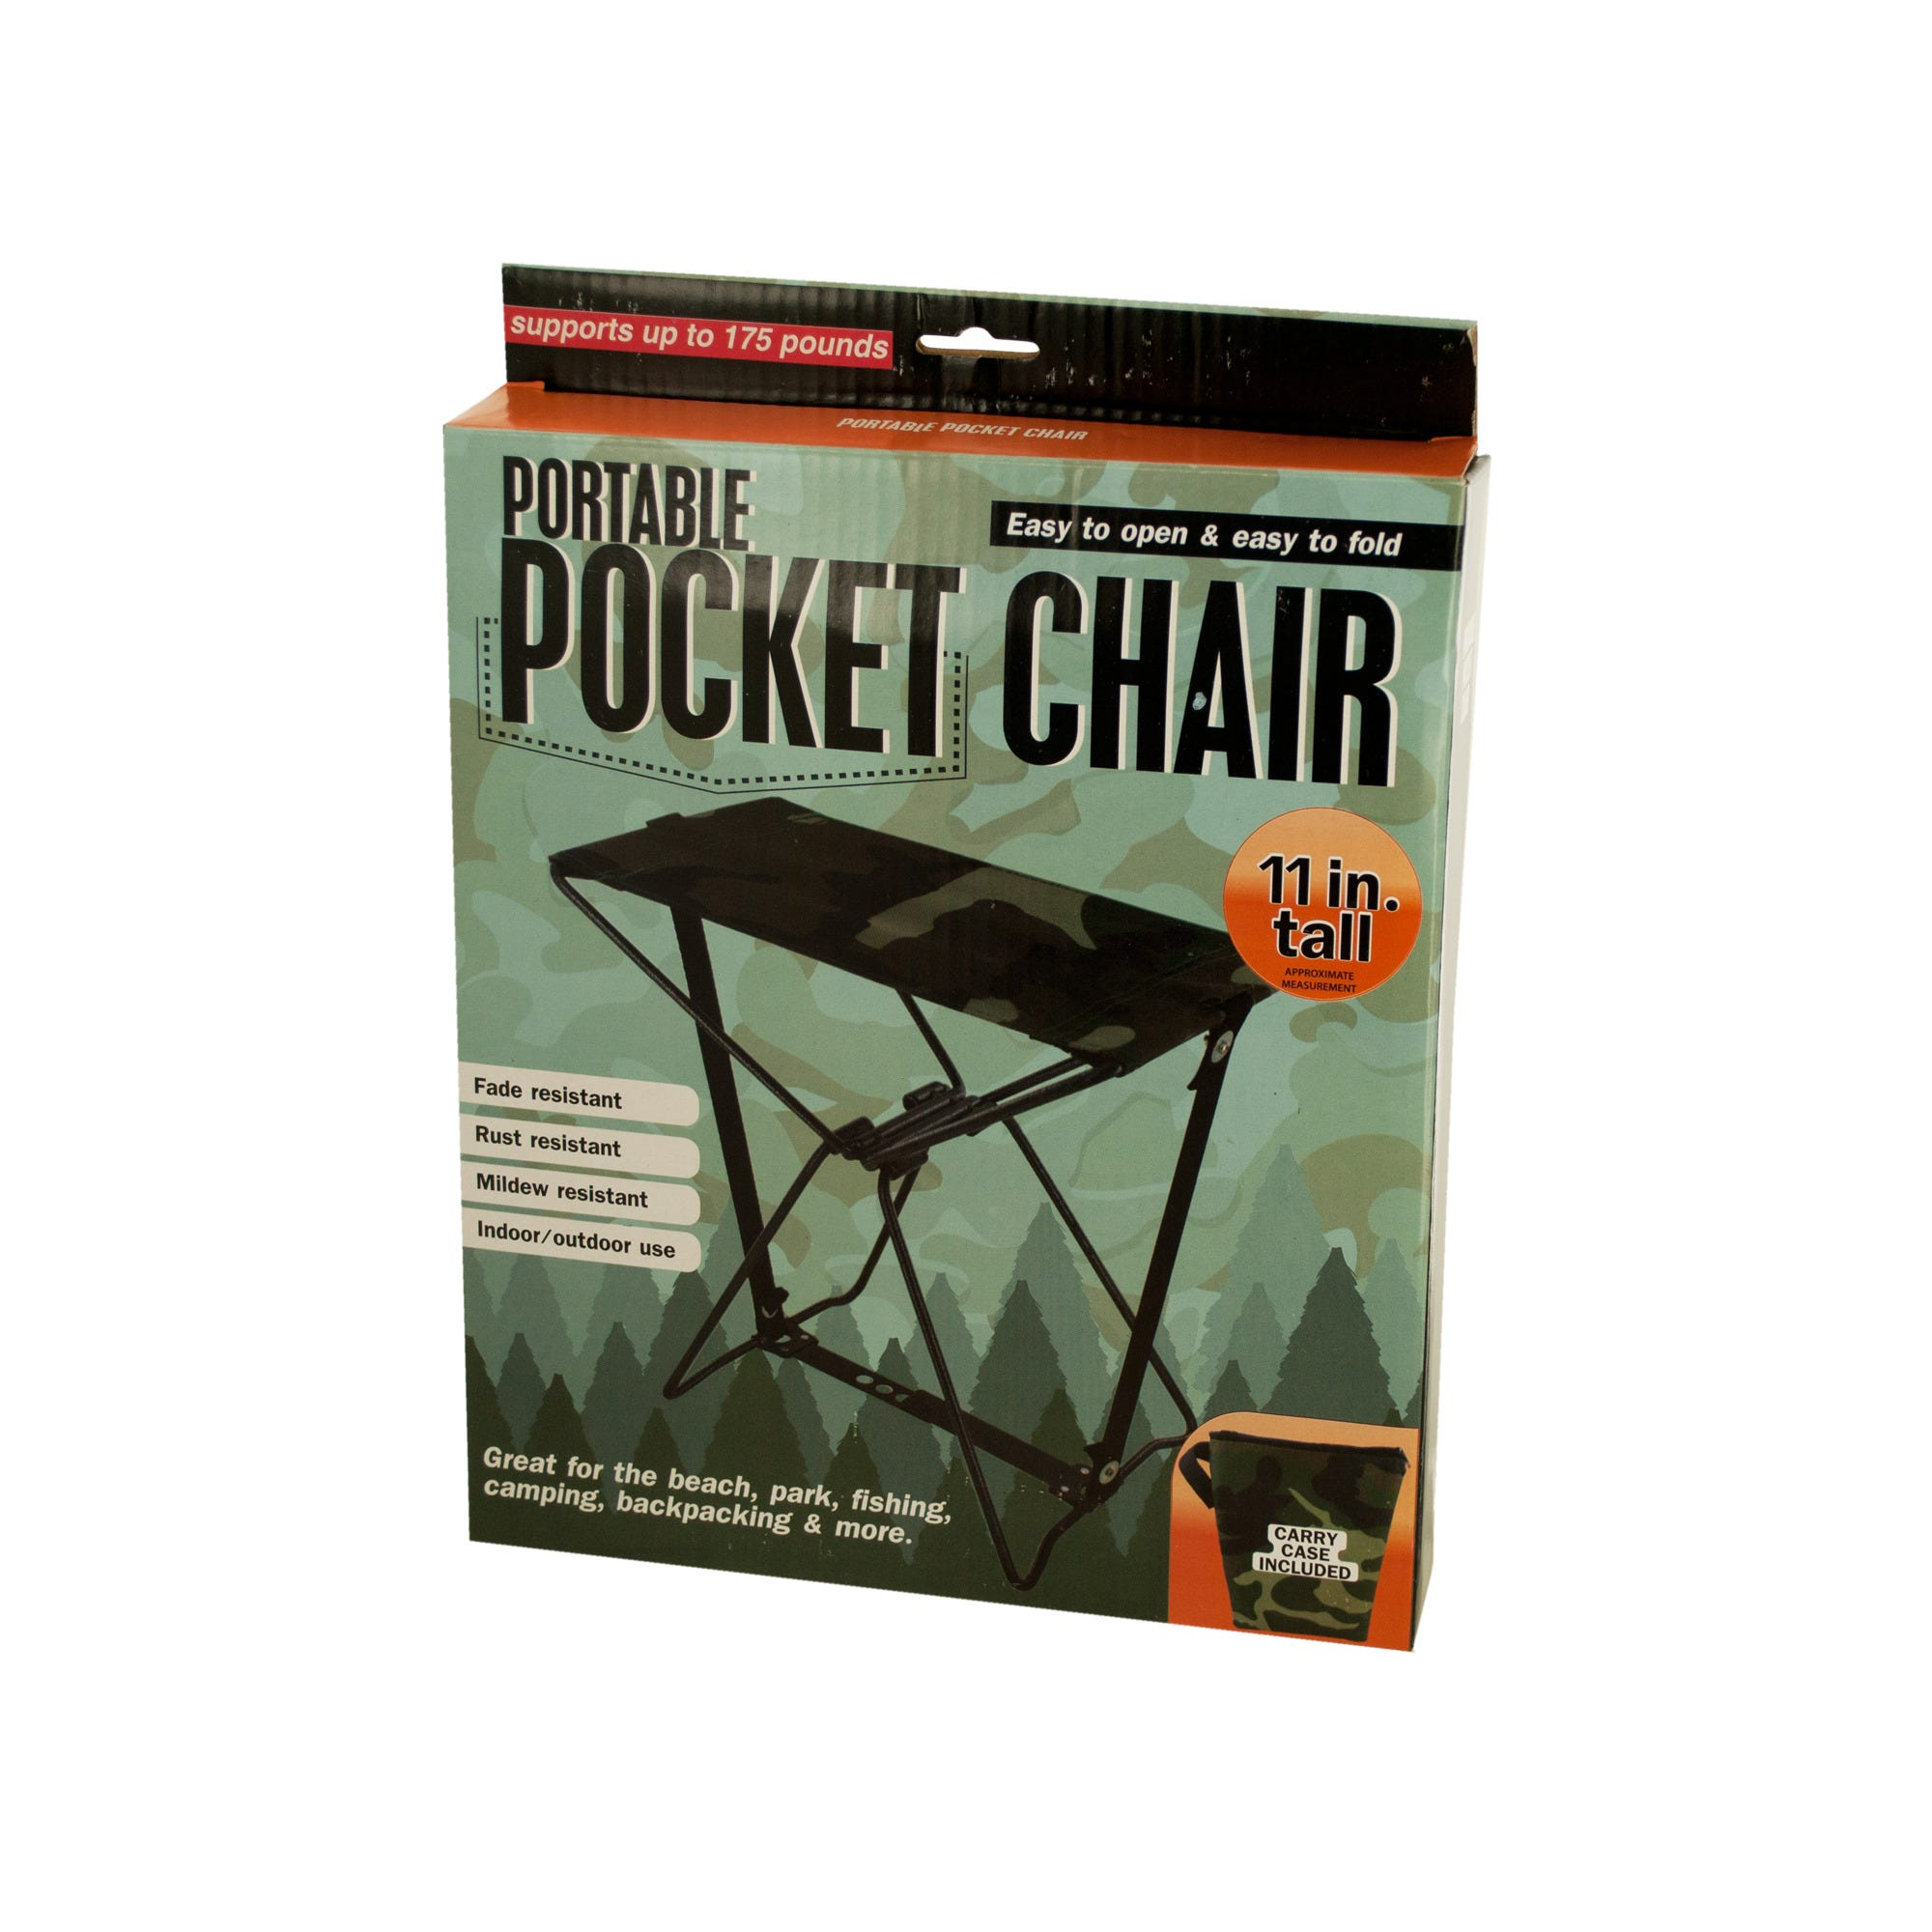 portable-pocket-CHAIR-with-carrying-case